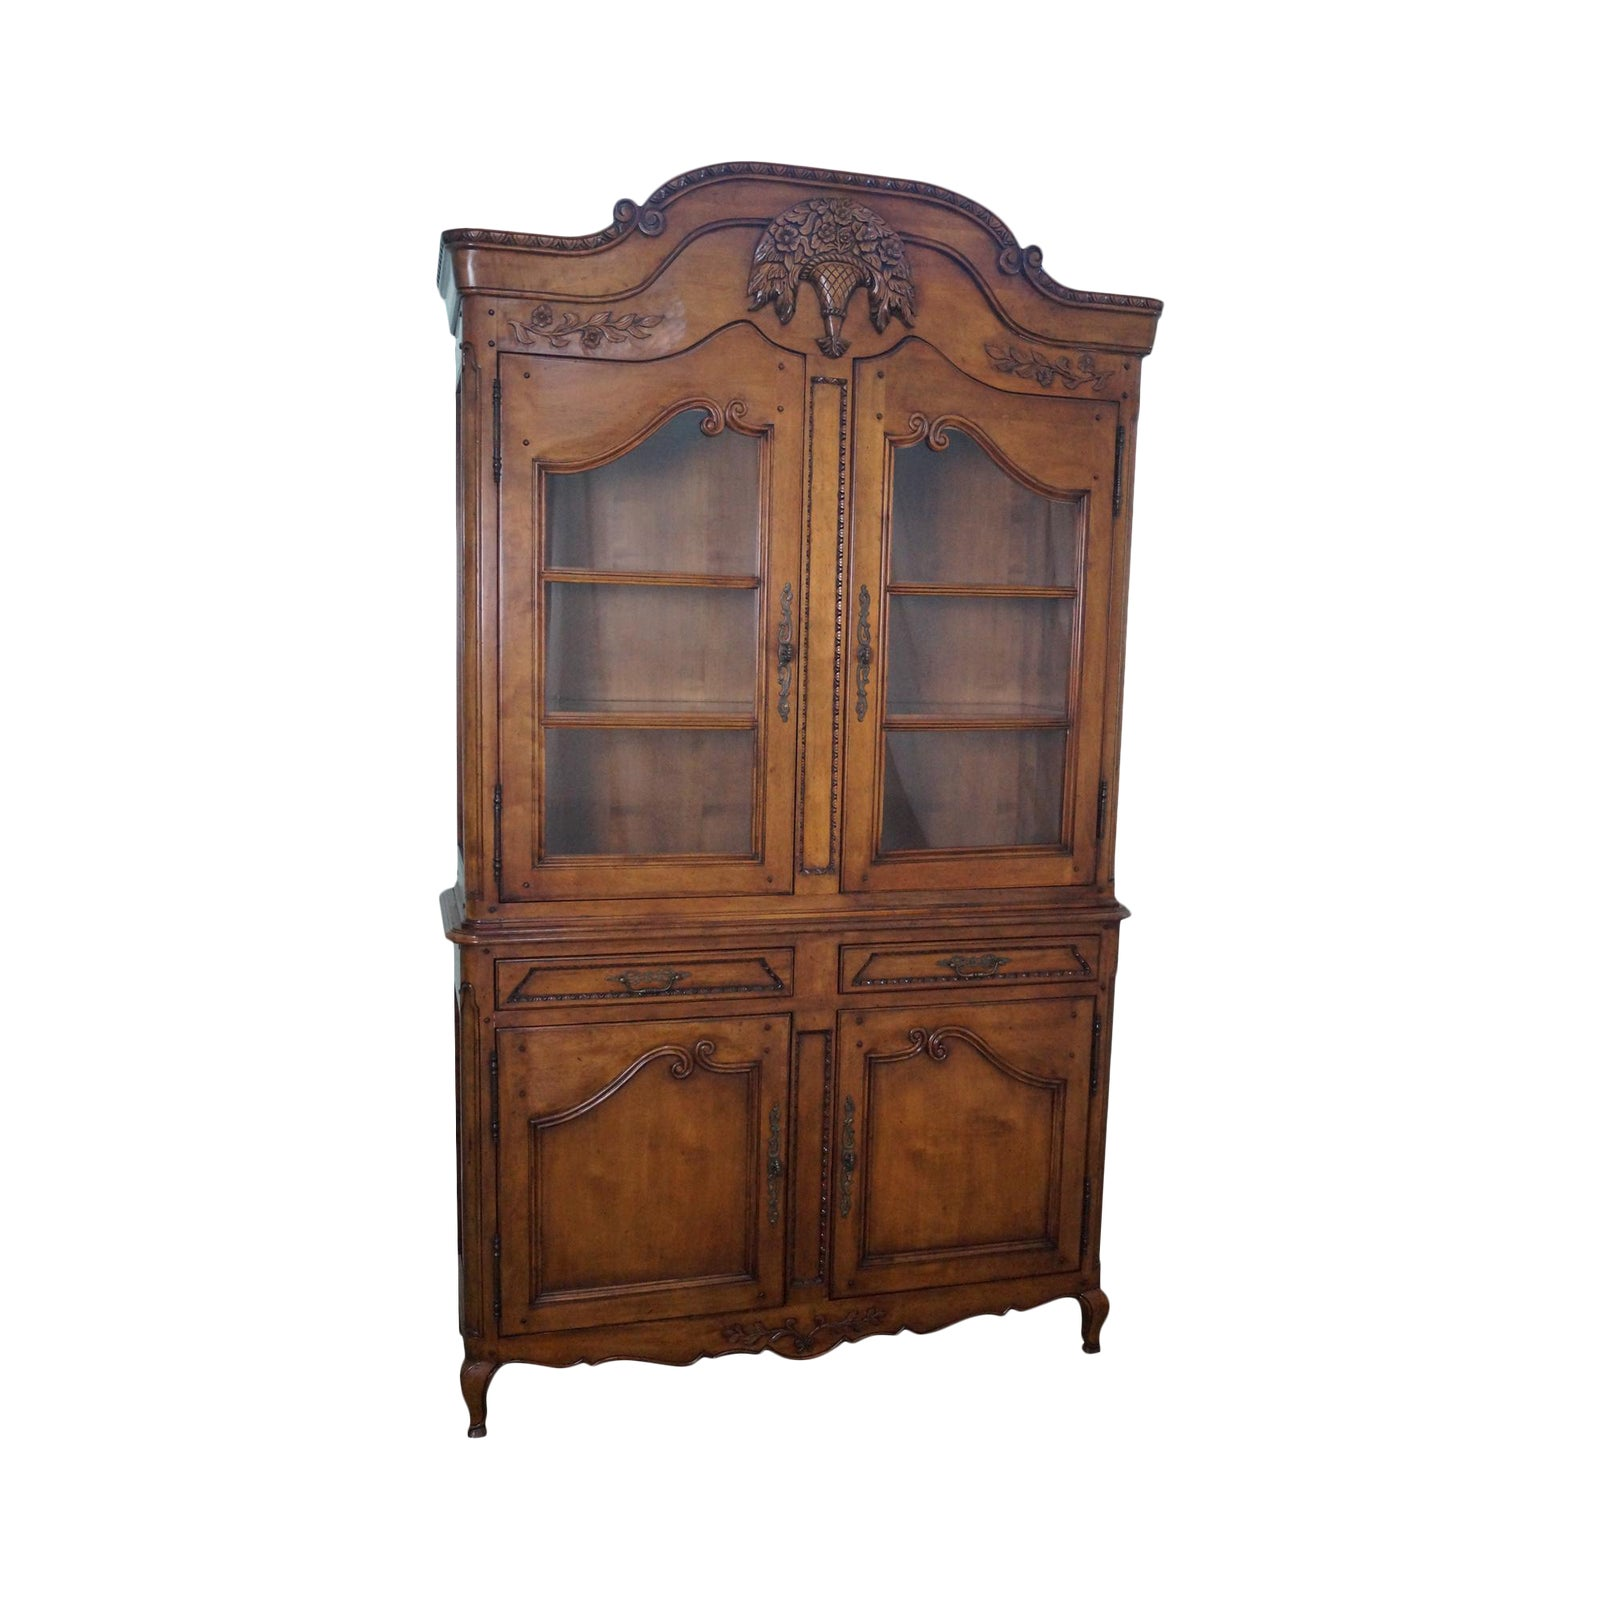 Vaisselier Etroit: Fine Quality French Country Style Large Fruitwood Hutch